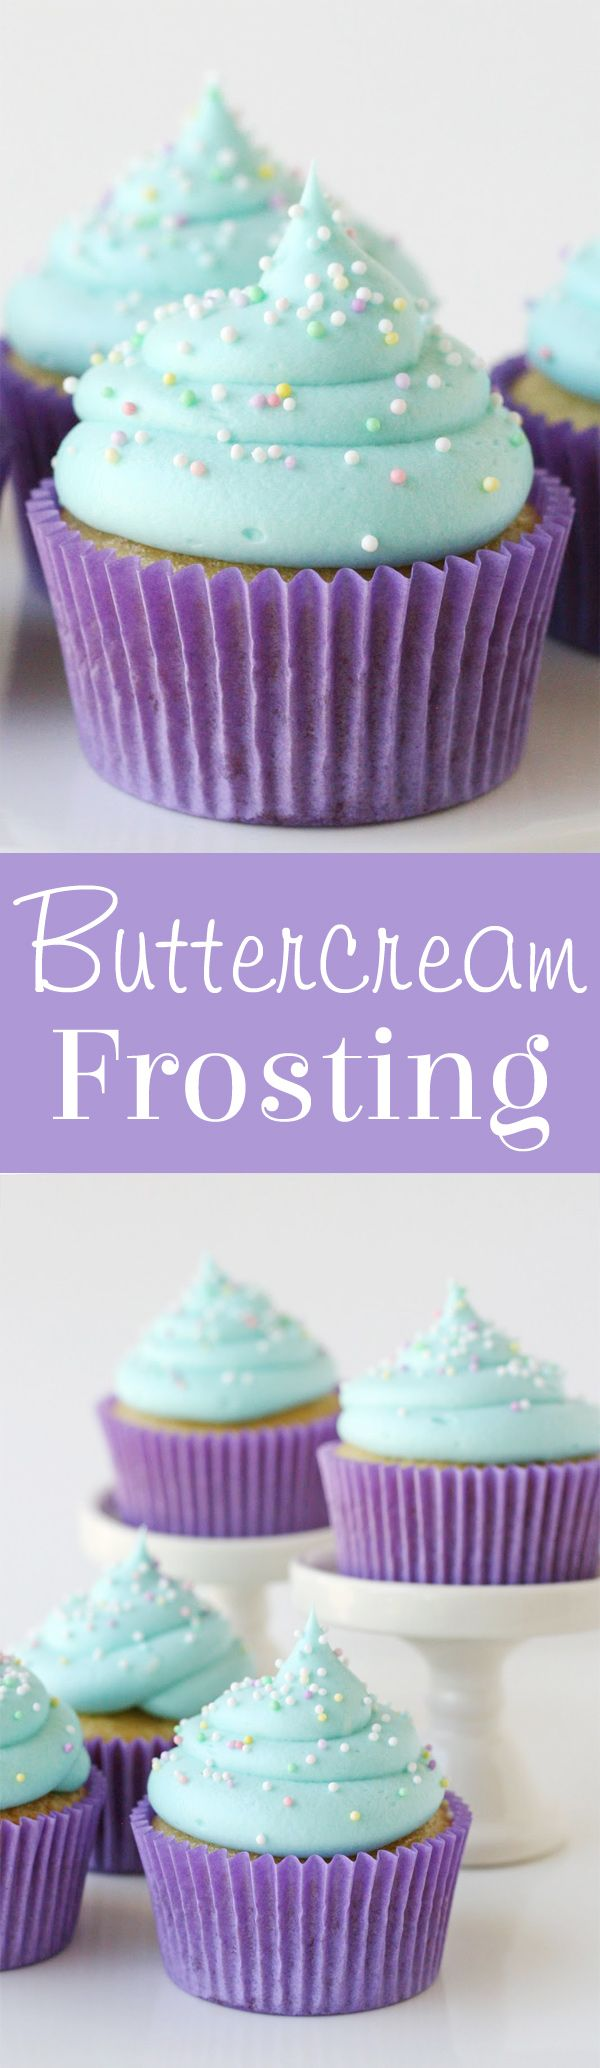 These are so pretty! This classic American Buttercream Frosting is easy to make, delicious and perfect for frosting cakes, cupcakes and cookies!